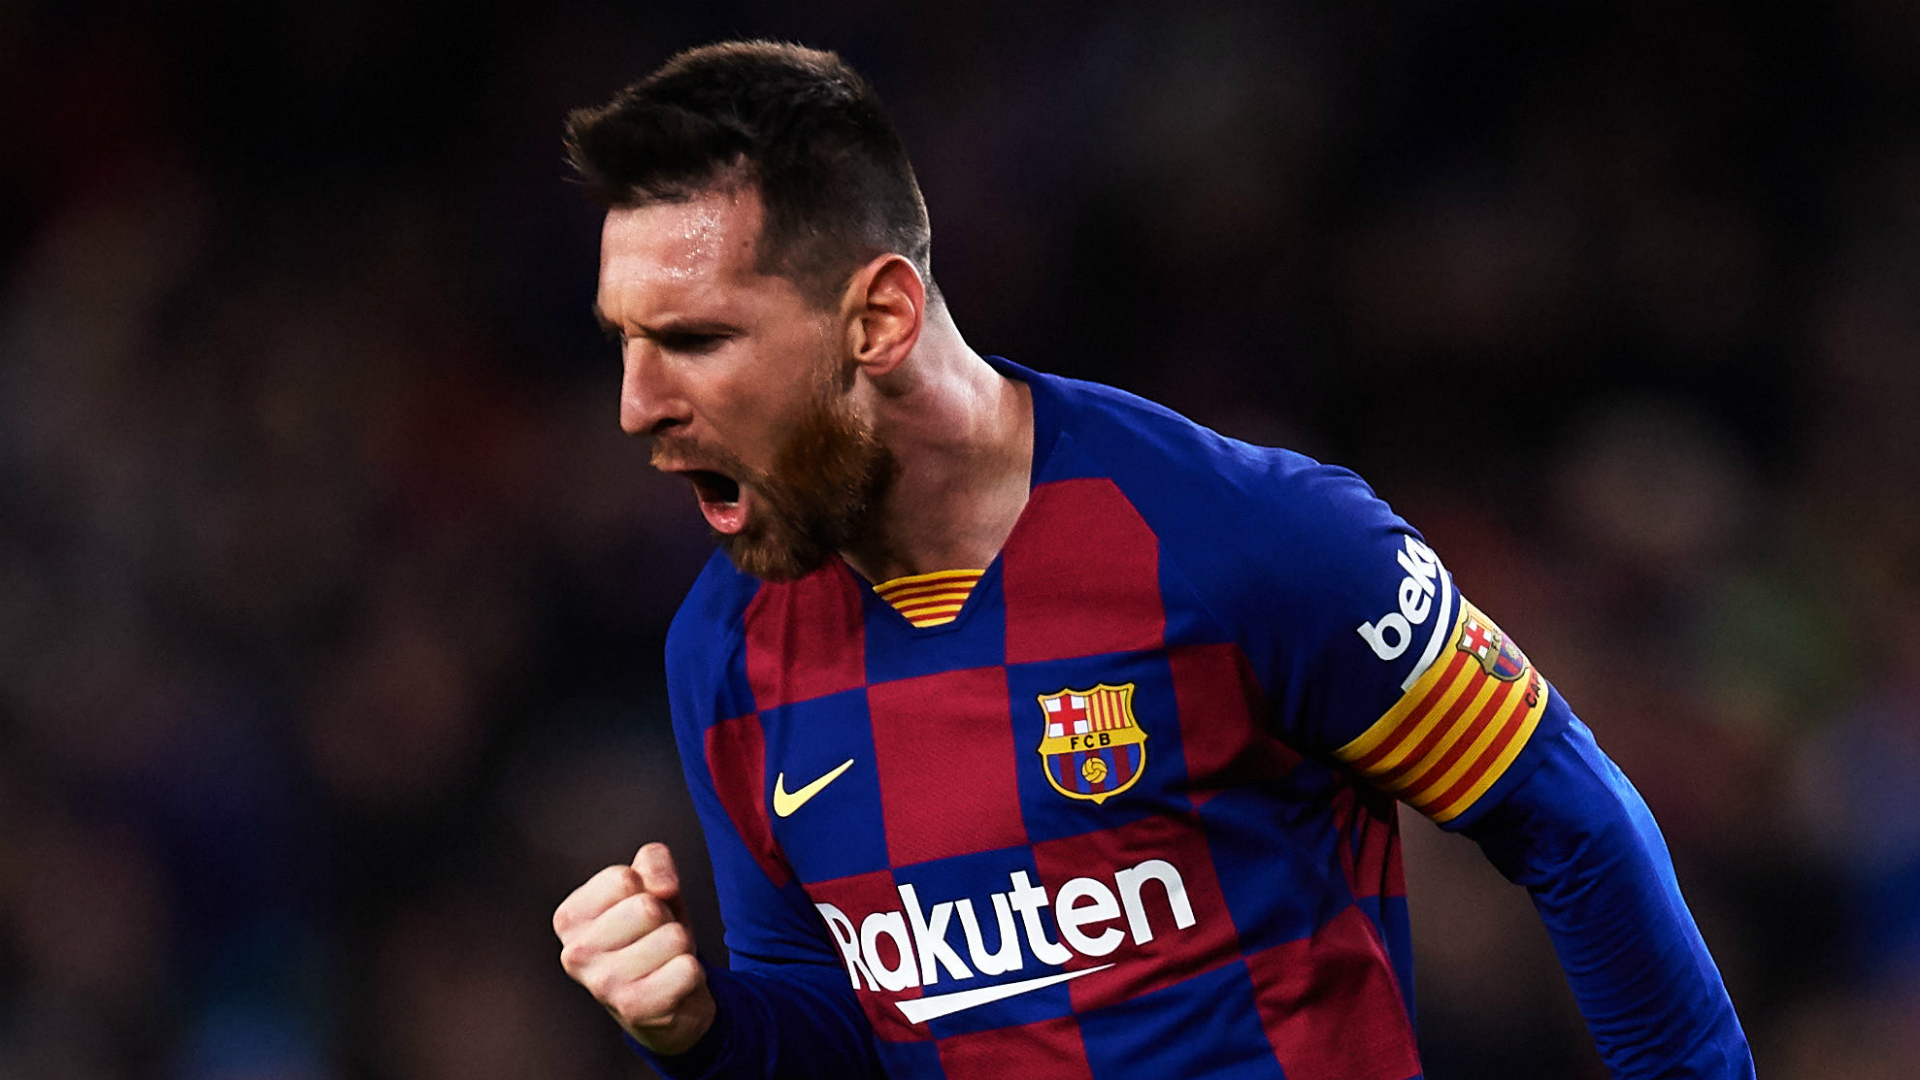 Barcelona 4-1 Celta Vigo: Messi dead ball hat-trick wins it